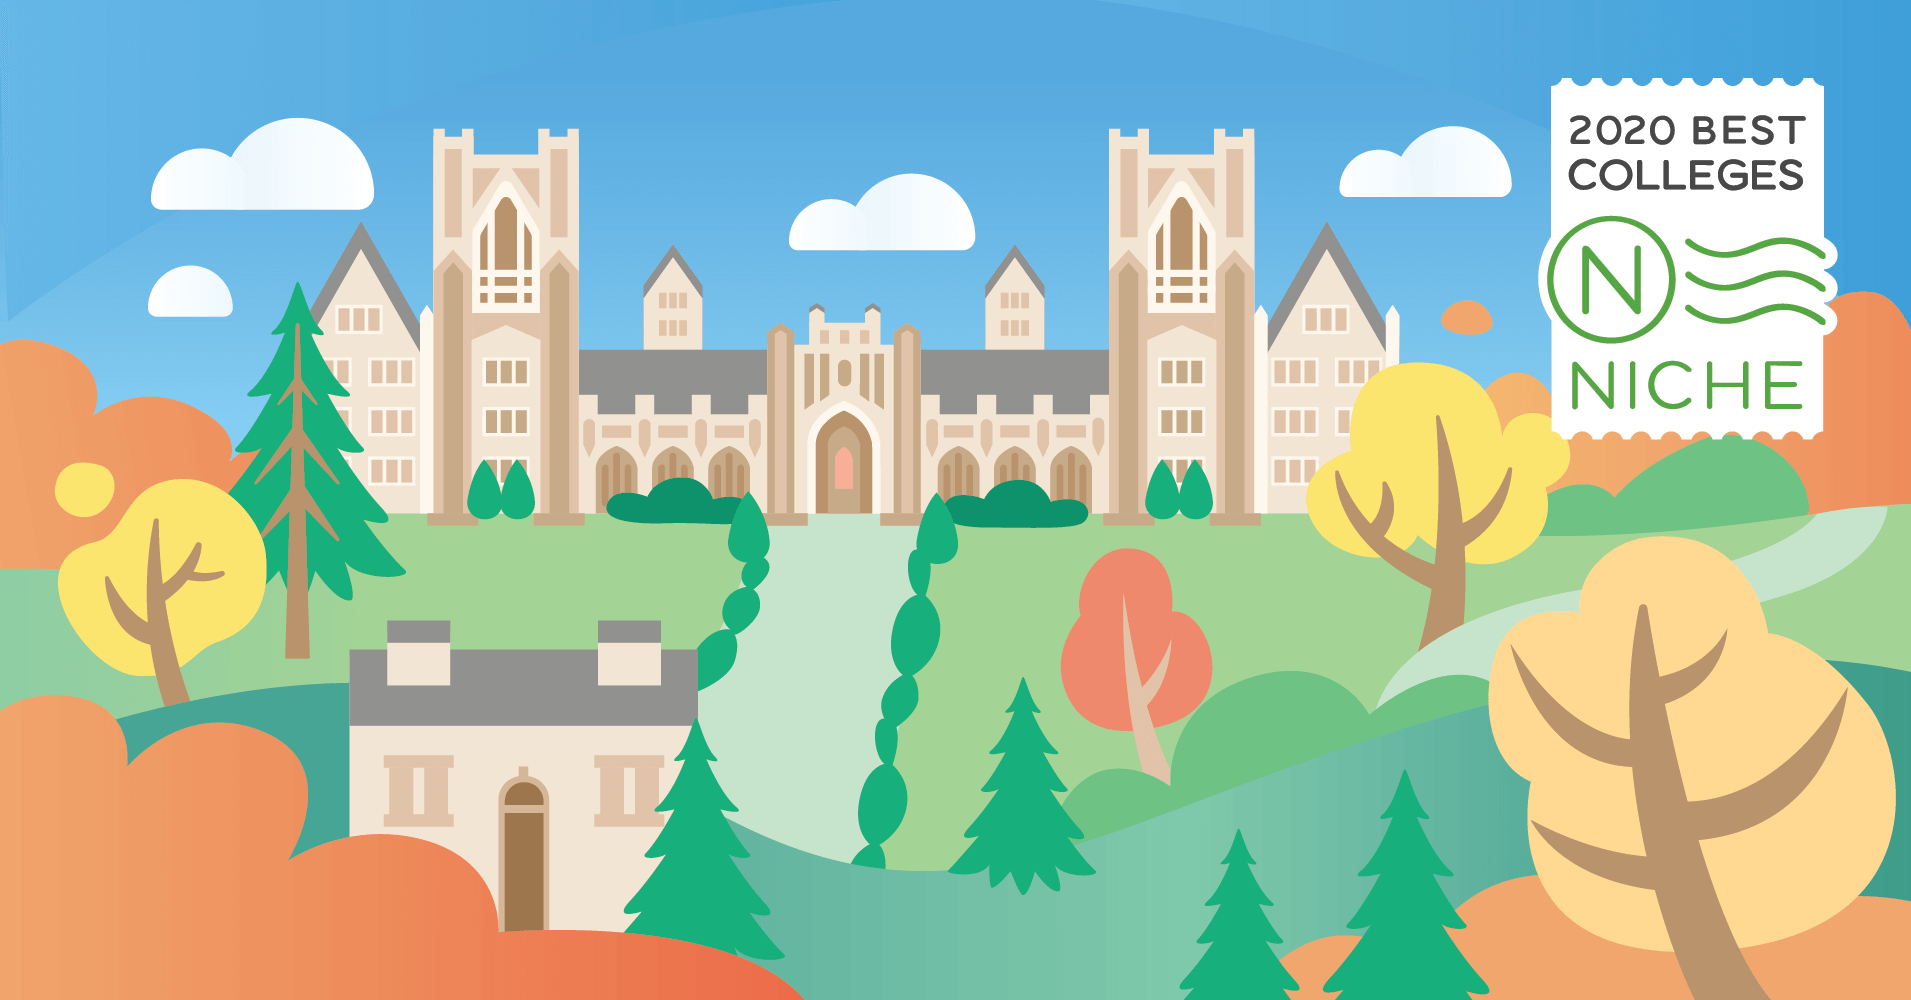 My top 10 colleges - Pitstop 26